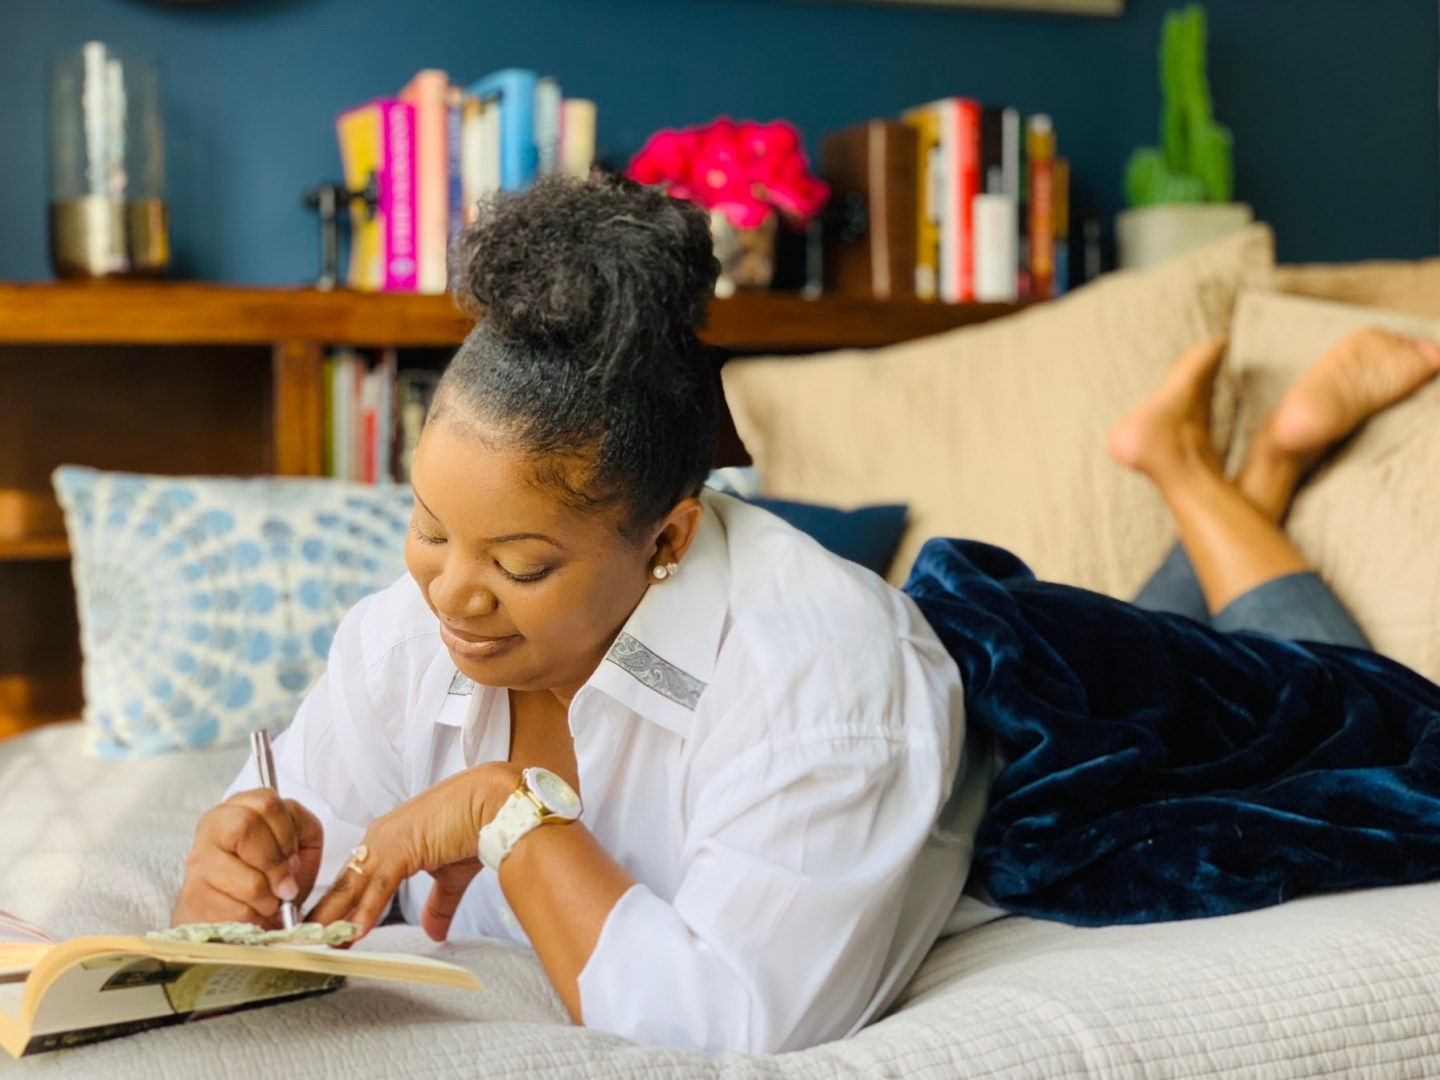 5 Collectibles for Book Lovers by African American Authors